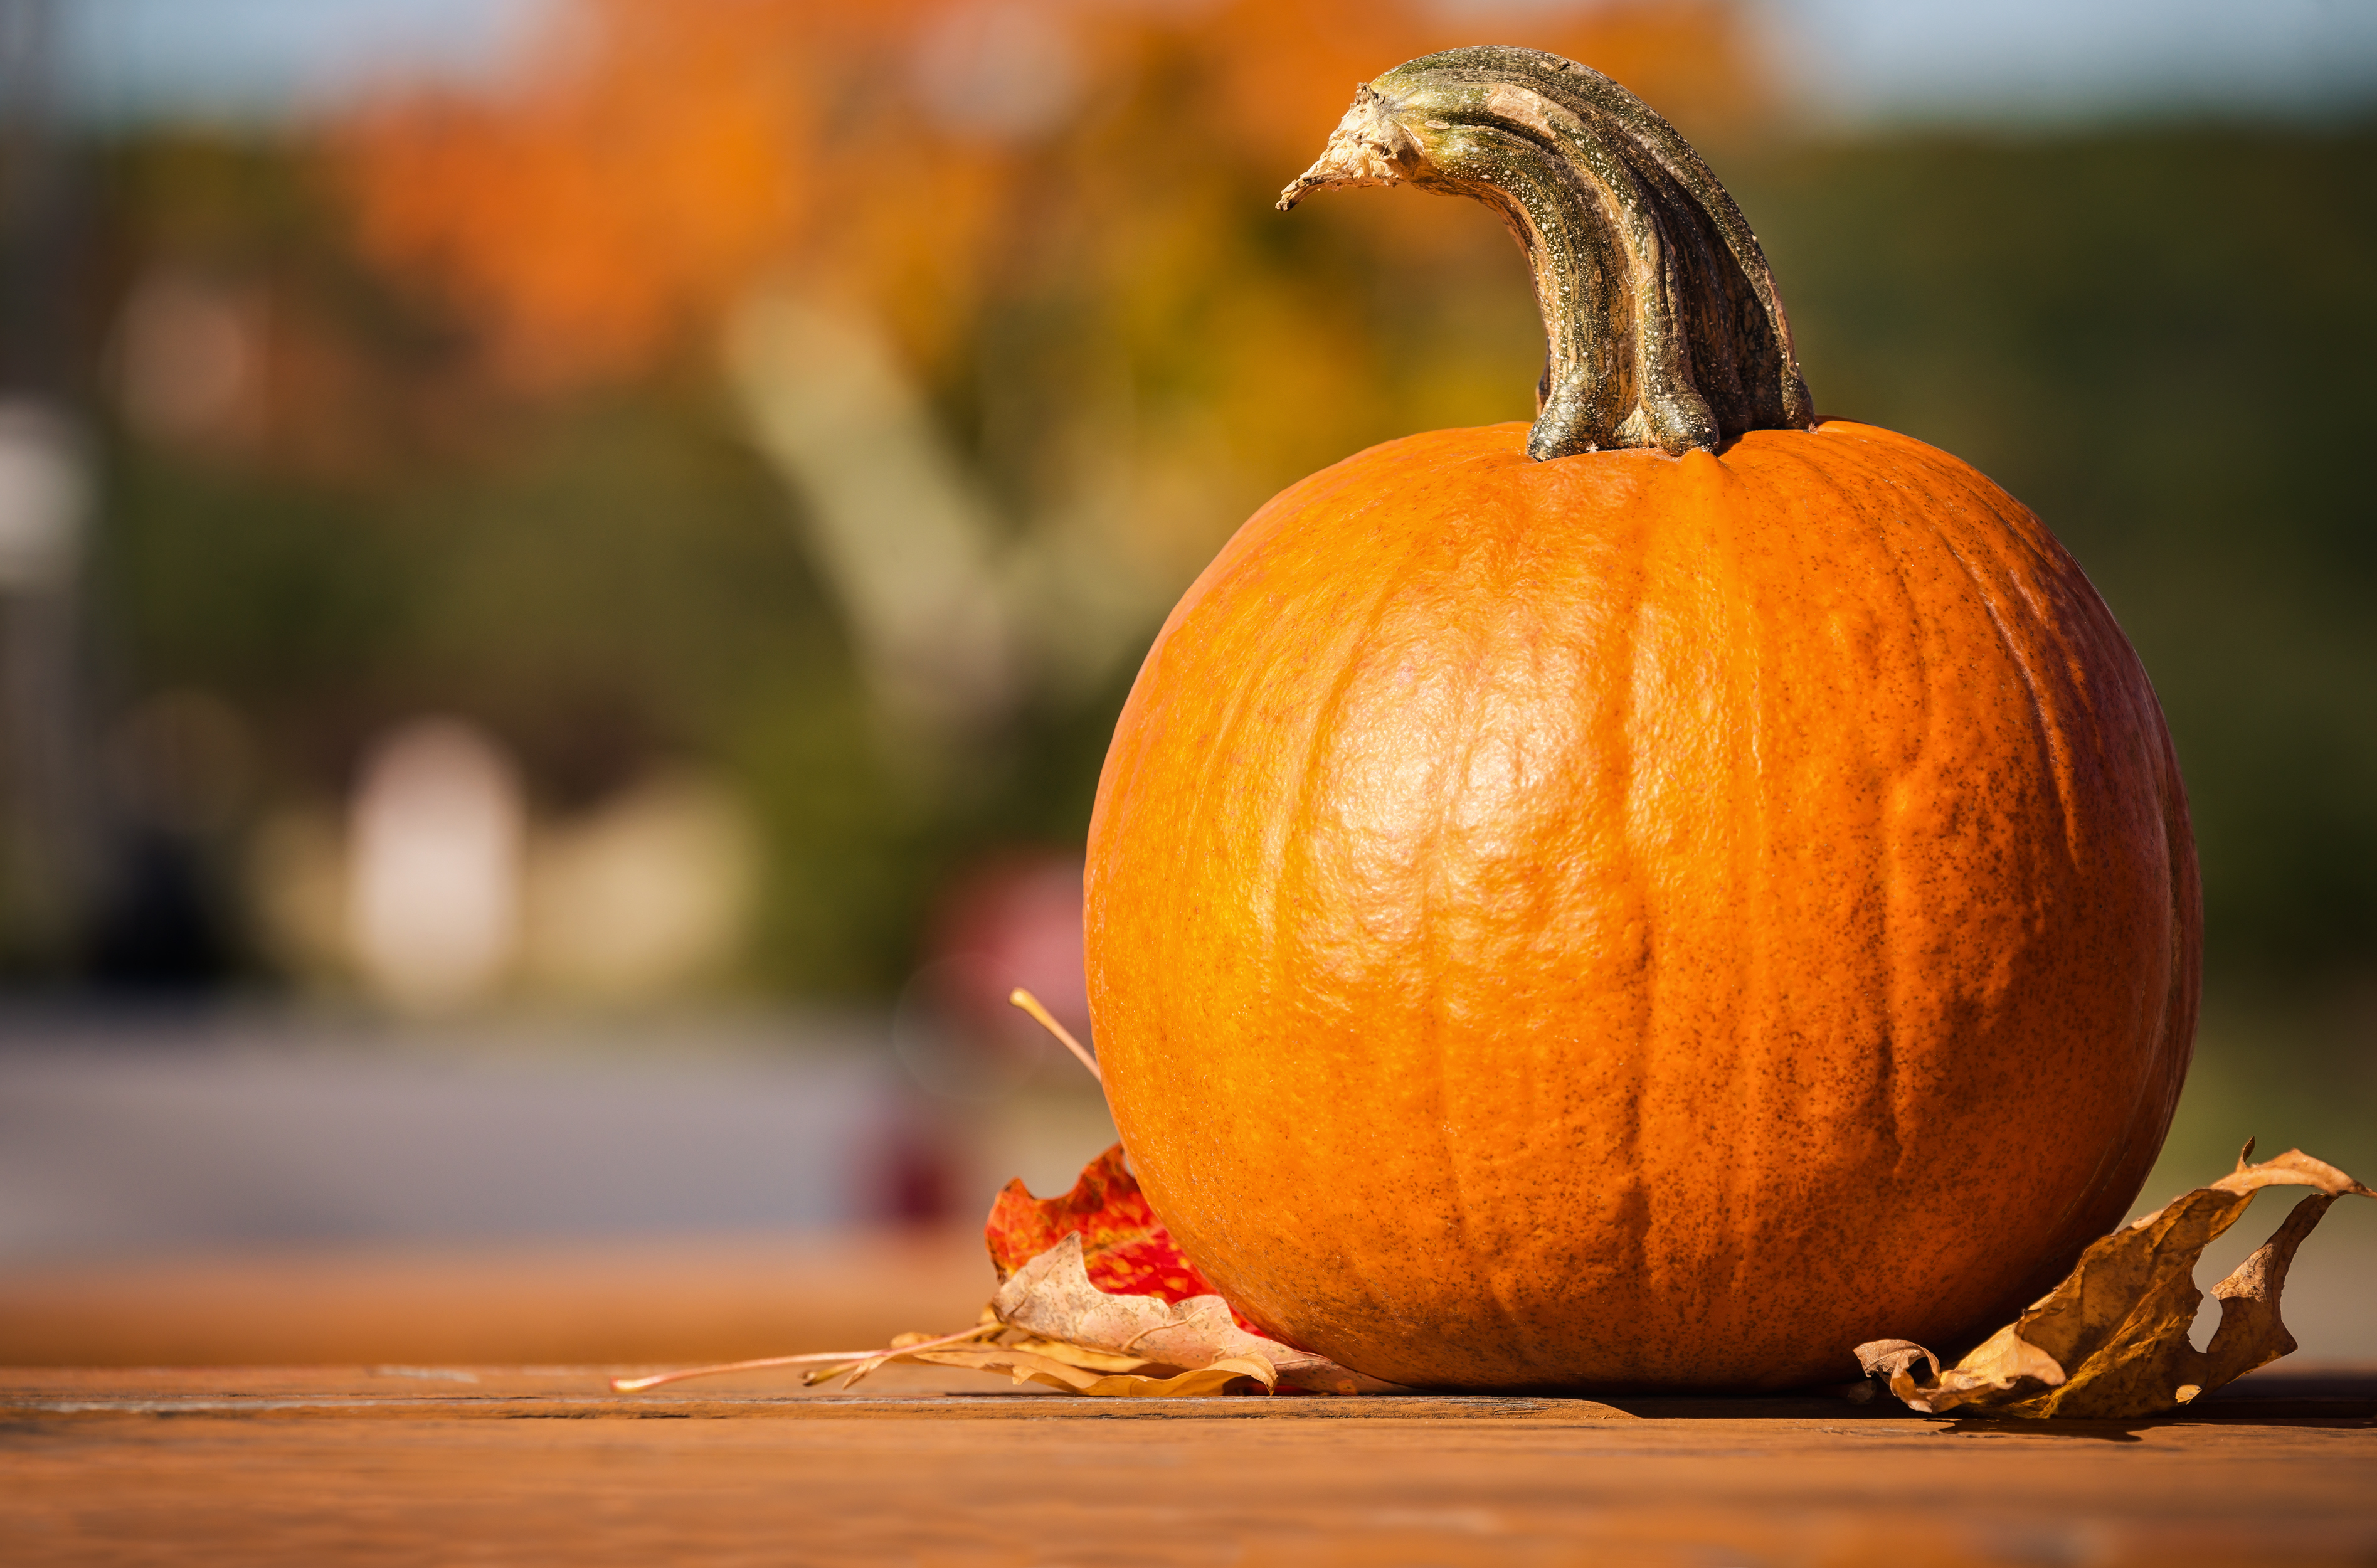 pumpkin recipes for halloween - a pumpkin outside in sunlight on a picnic table